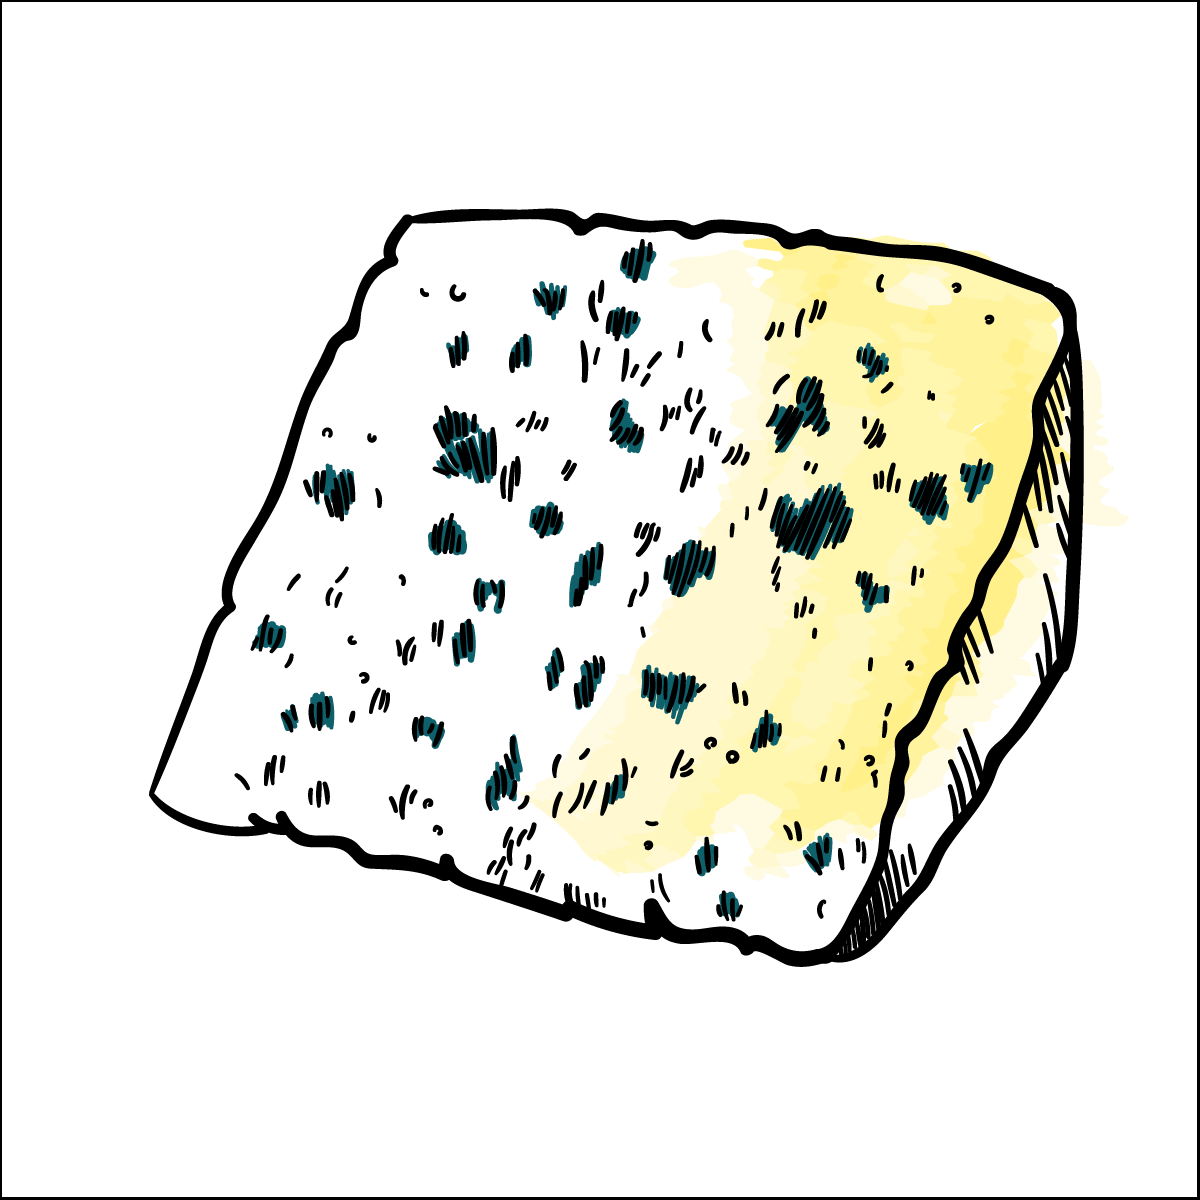 Roquefort - Copie